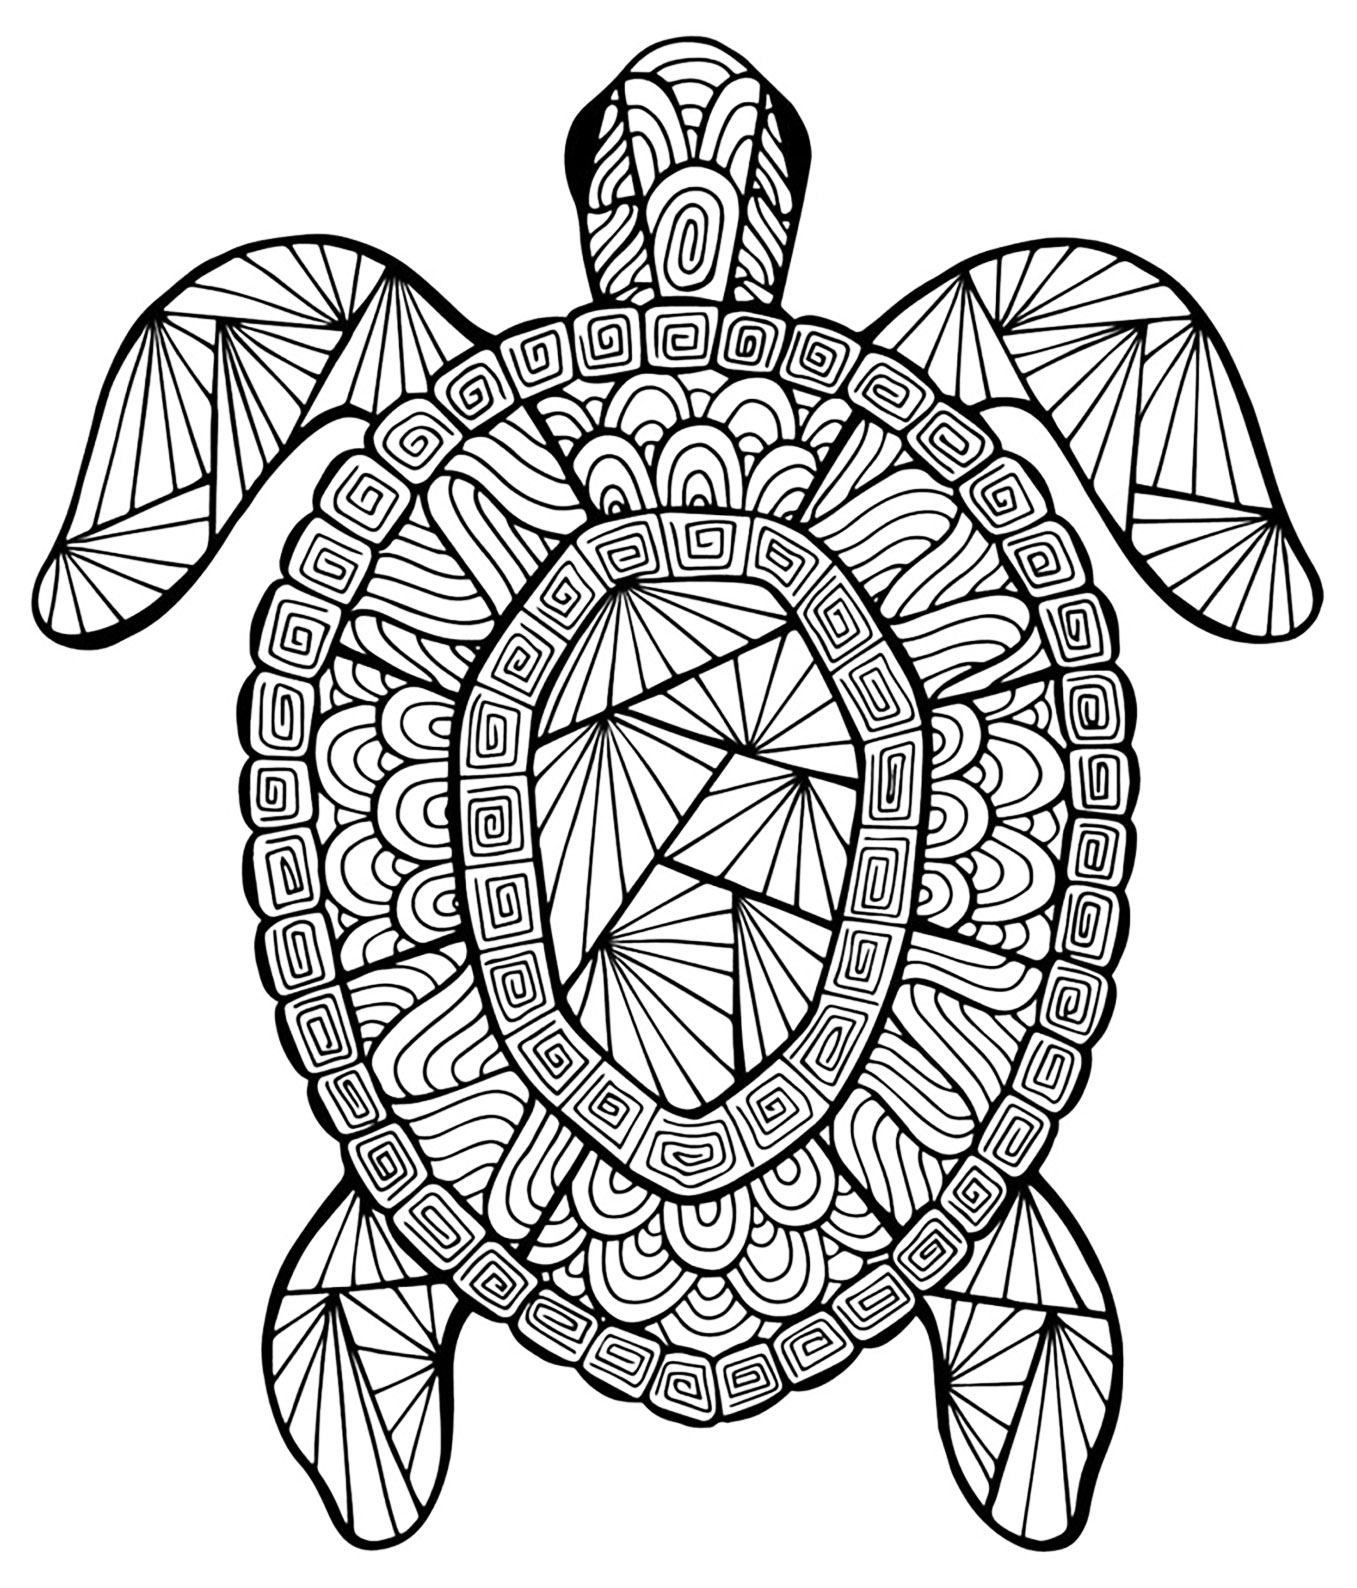 Coloriage Mandala Difficile Danimaux.Tortue Coloriages D Animaux 100 Mandalas Zen Anti Stress